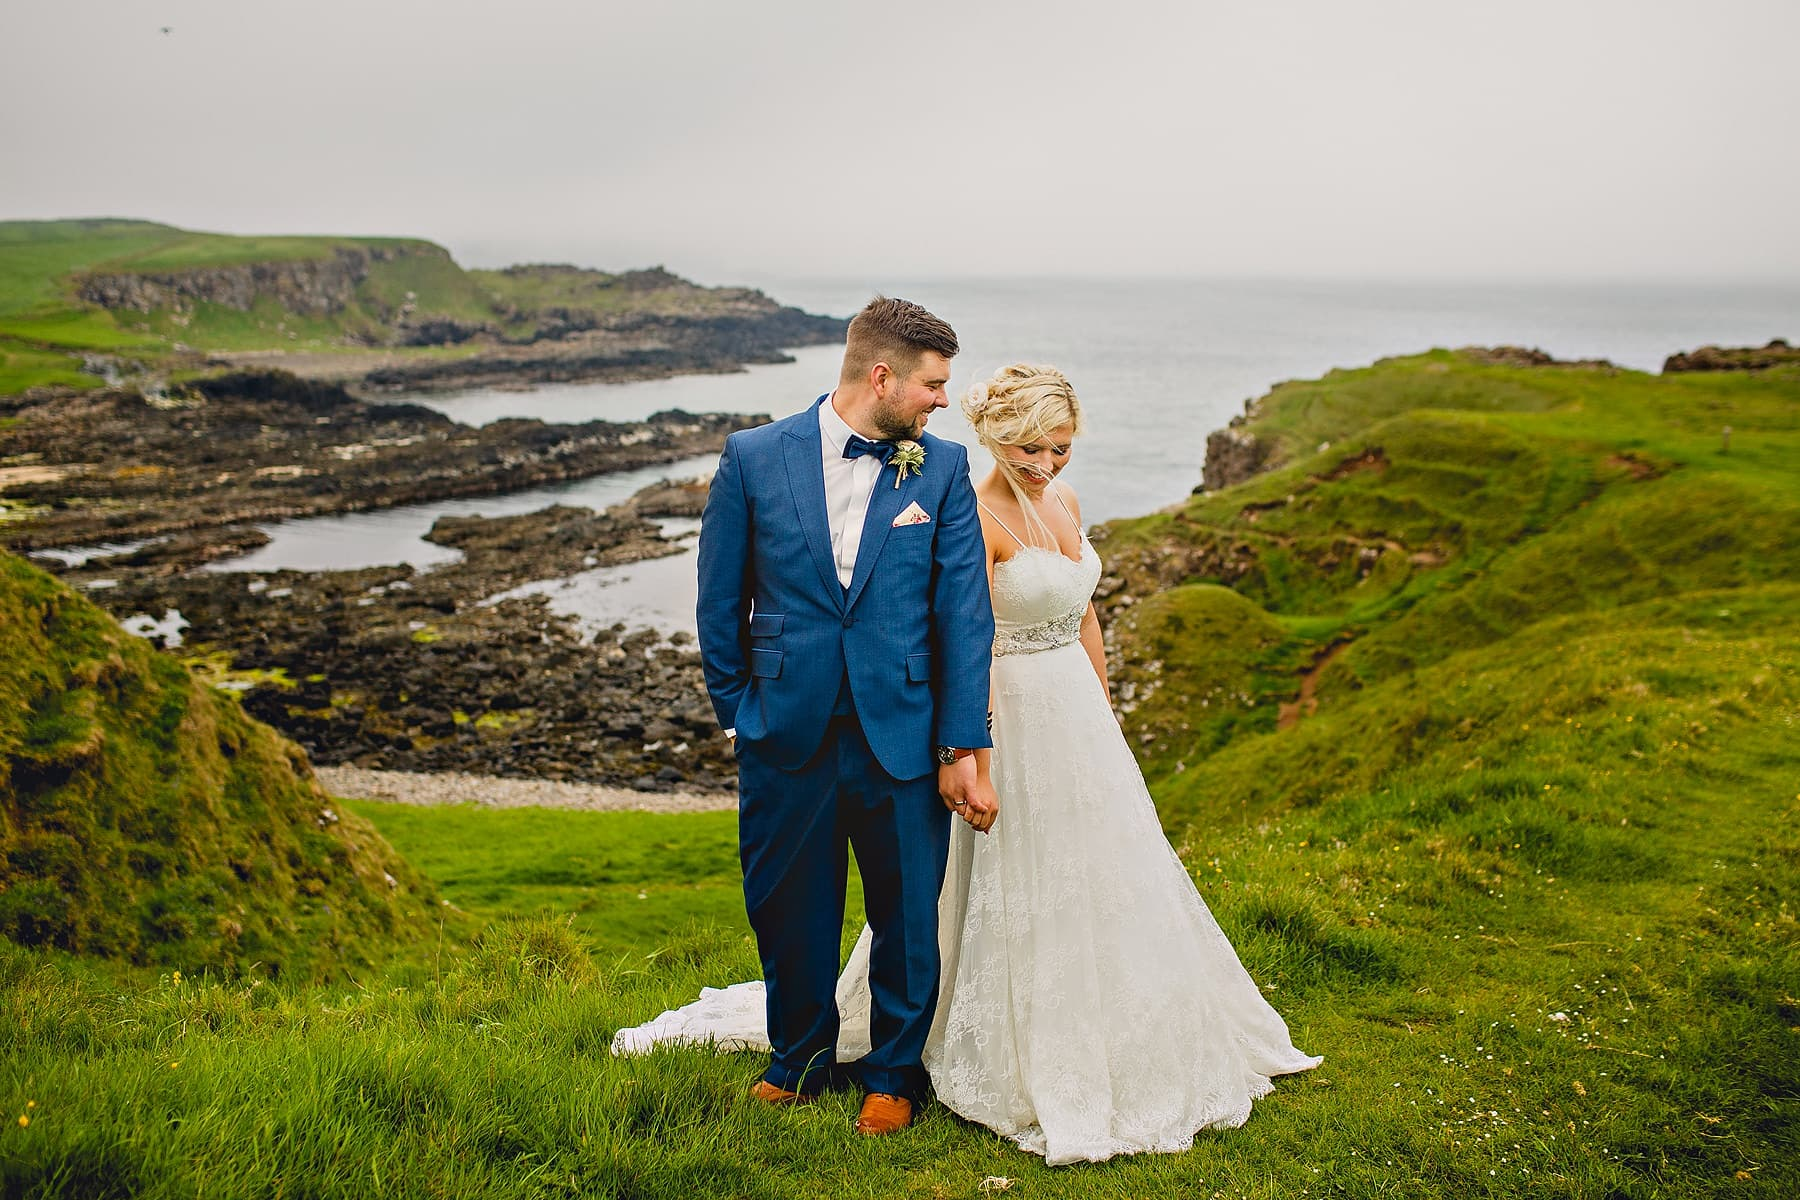 Bride Groom North Coast Cliffs Wedding Photographer,